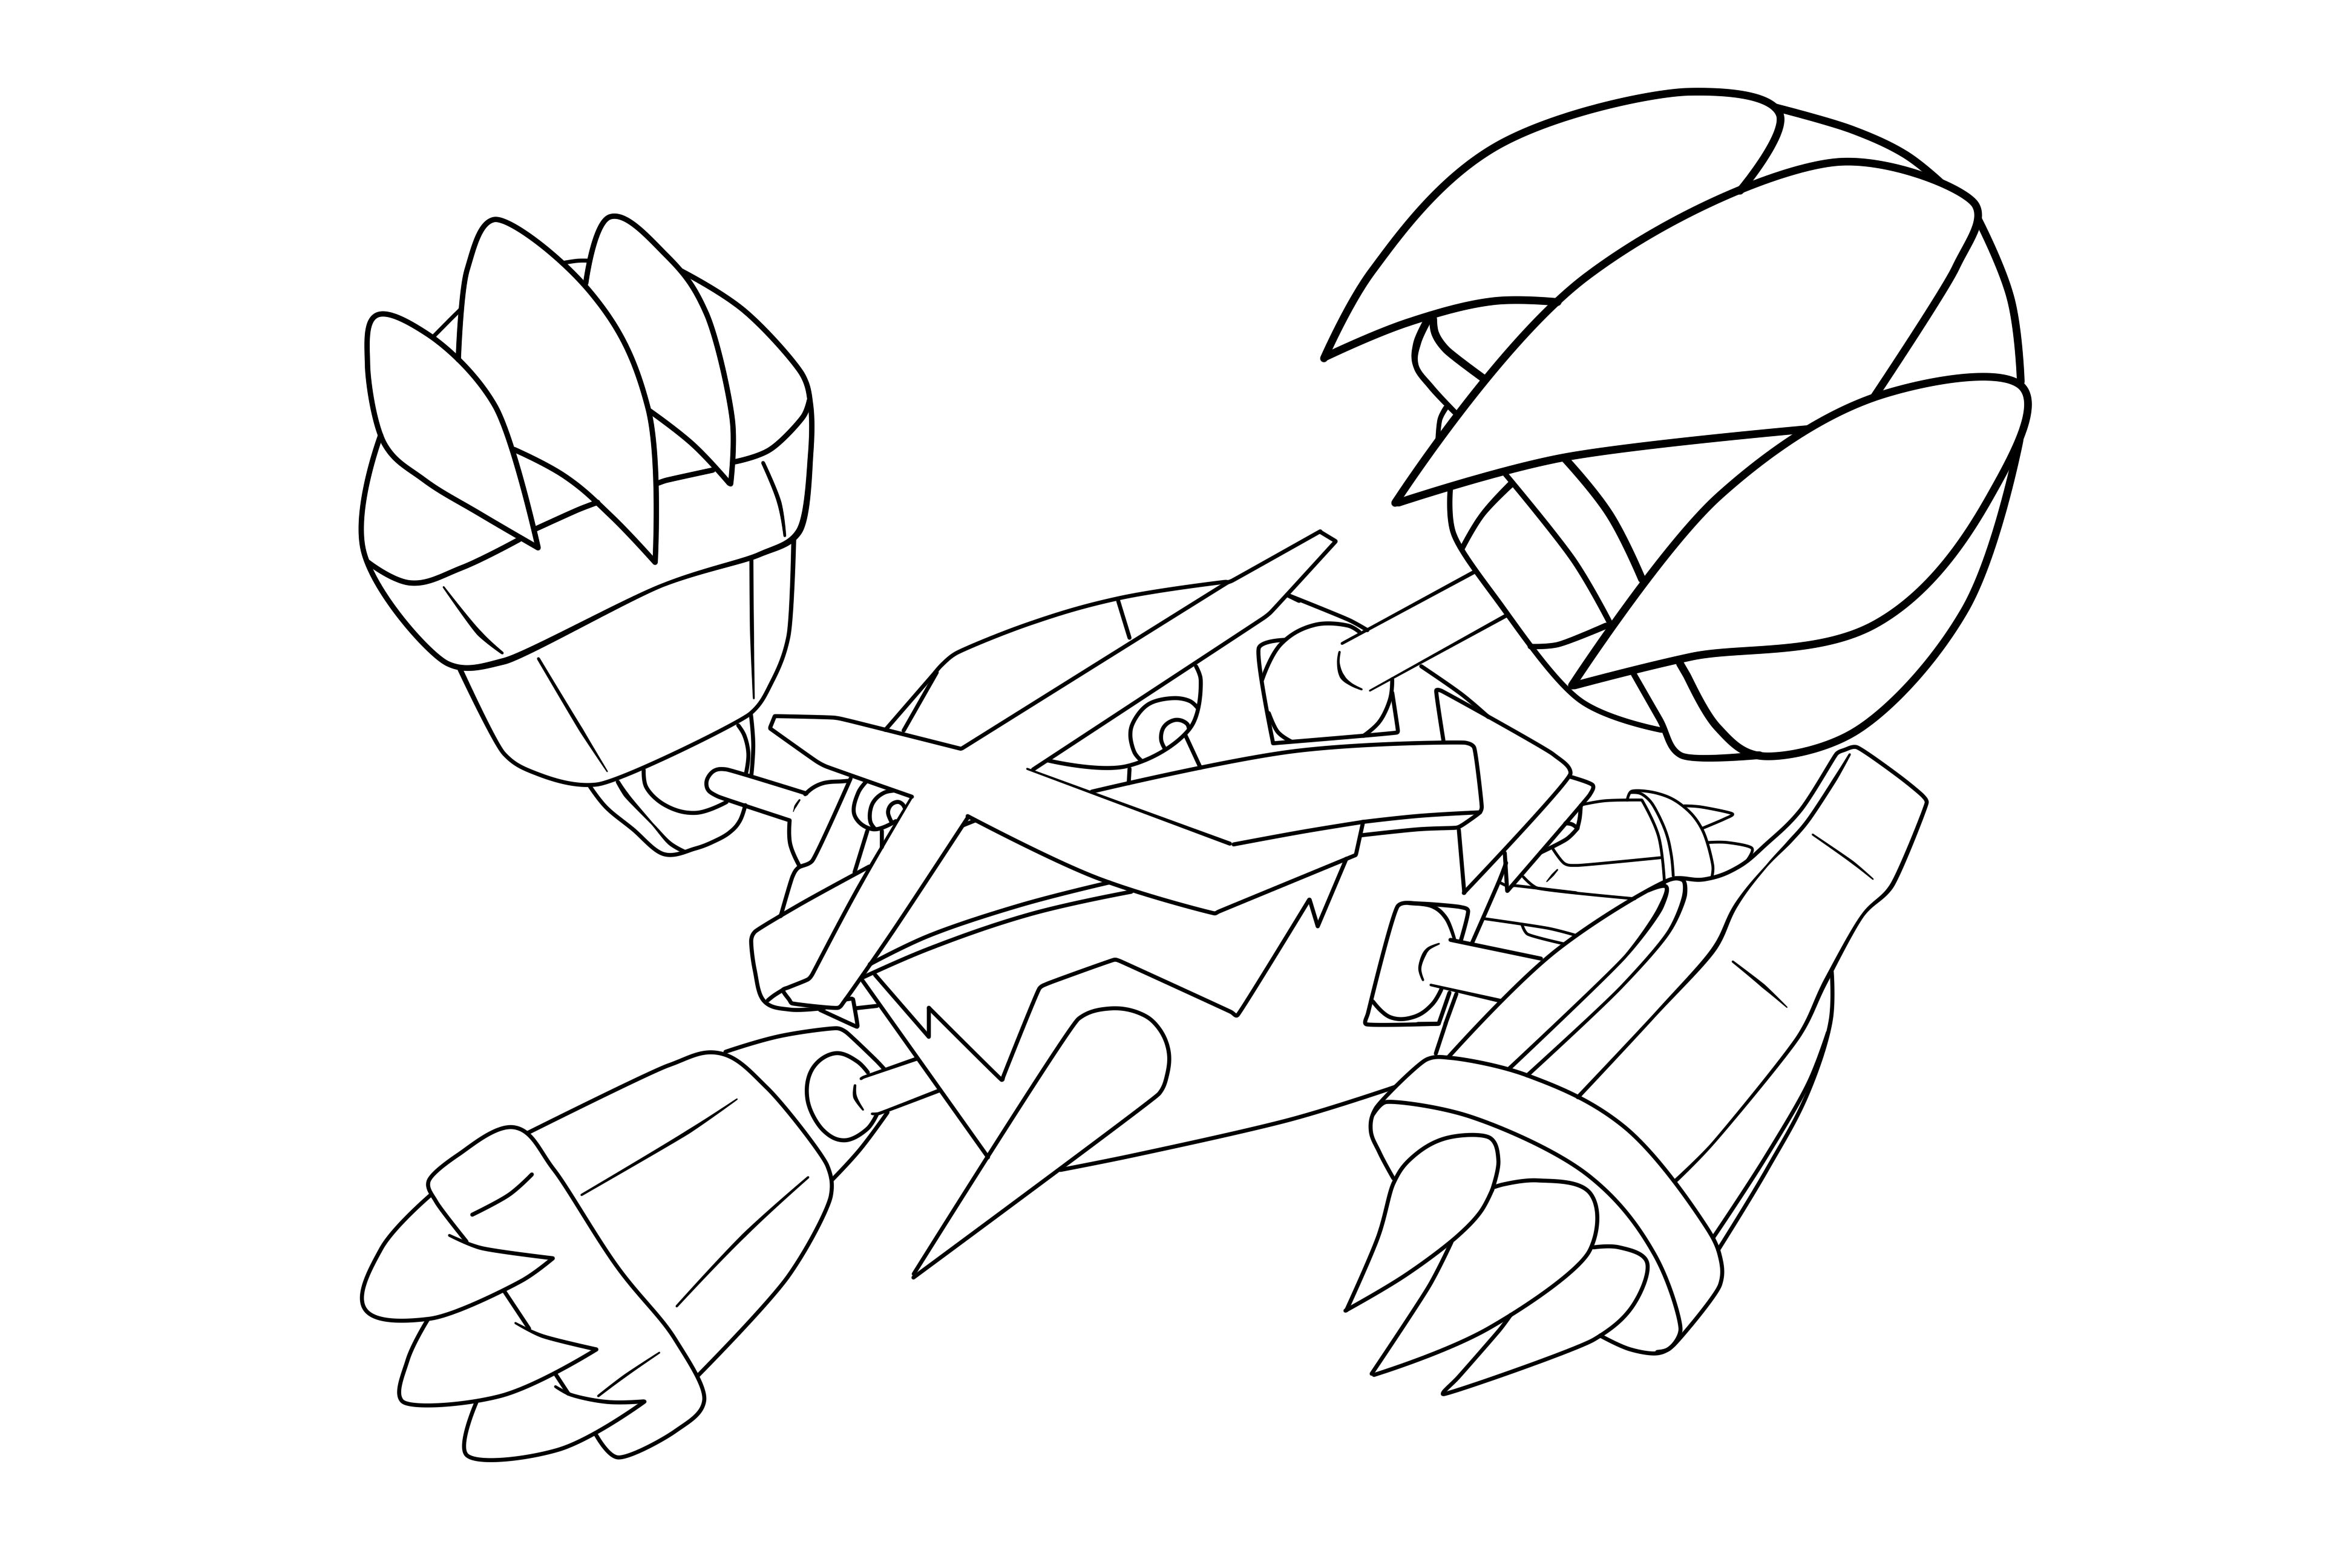 Metagross Coloring Pages Free Pokemon Coloring Pages Pokemon Coloring Coloring Pages